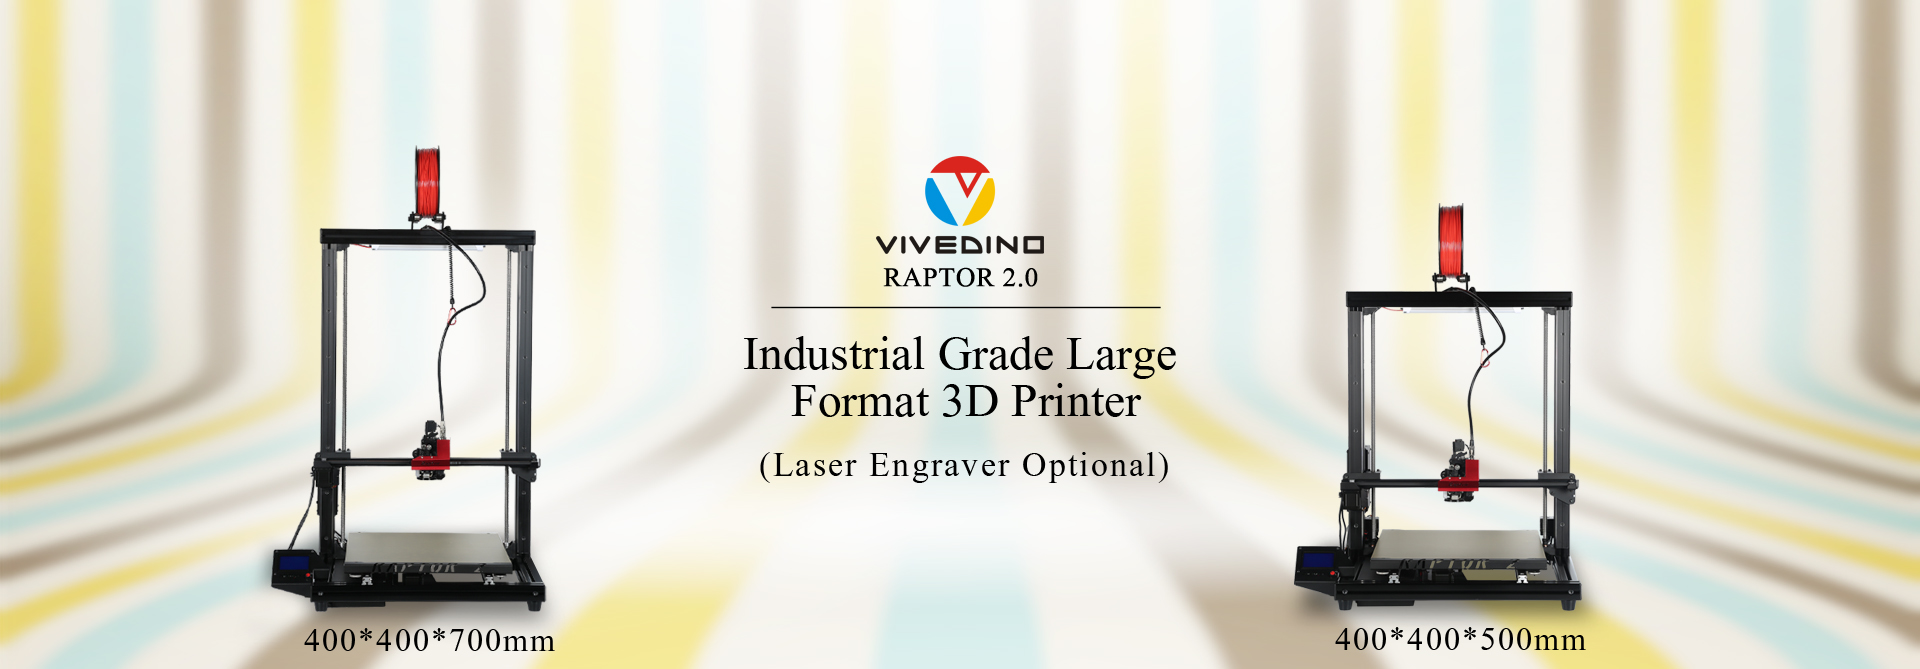 Industrial Grade Large Format 3D Printer